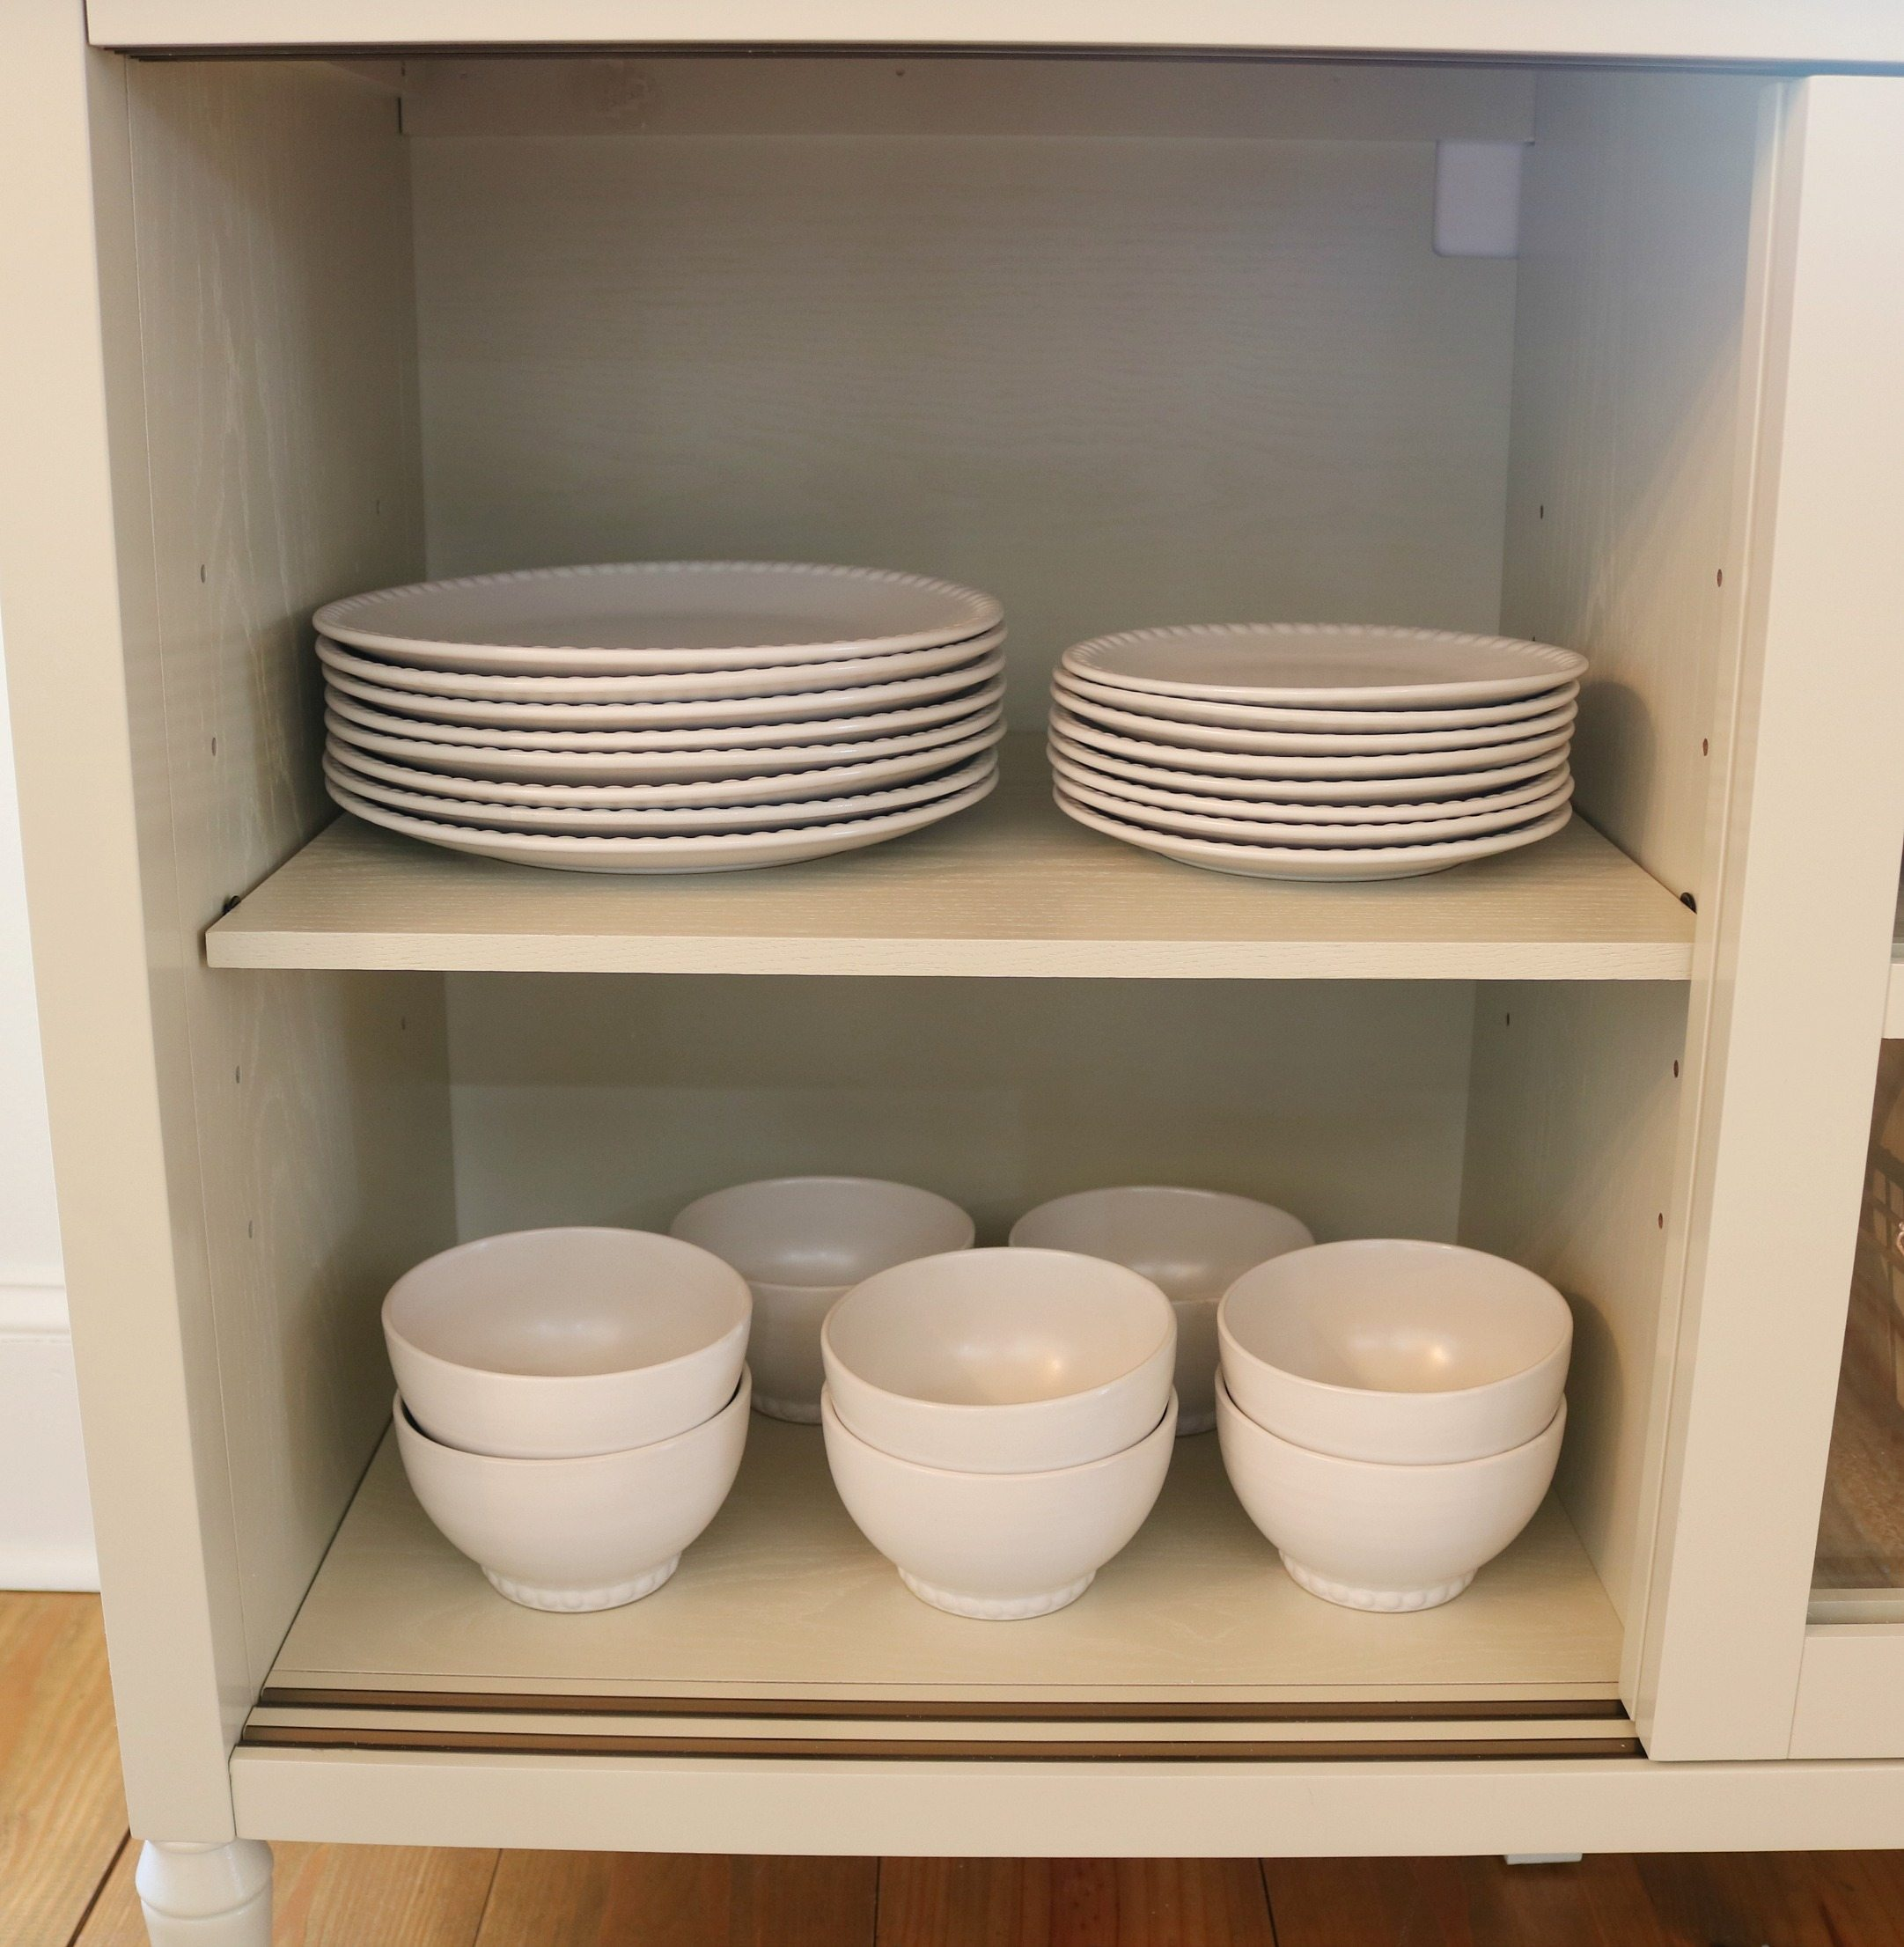 Dining storage perfect for small spaces